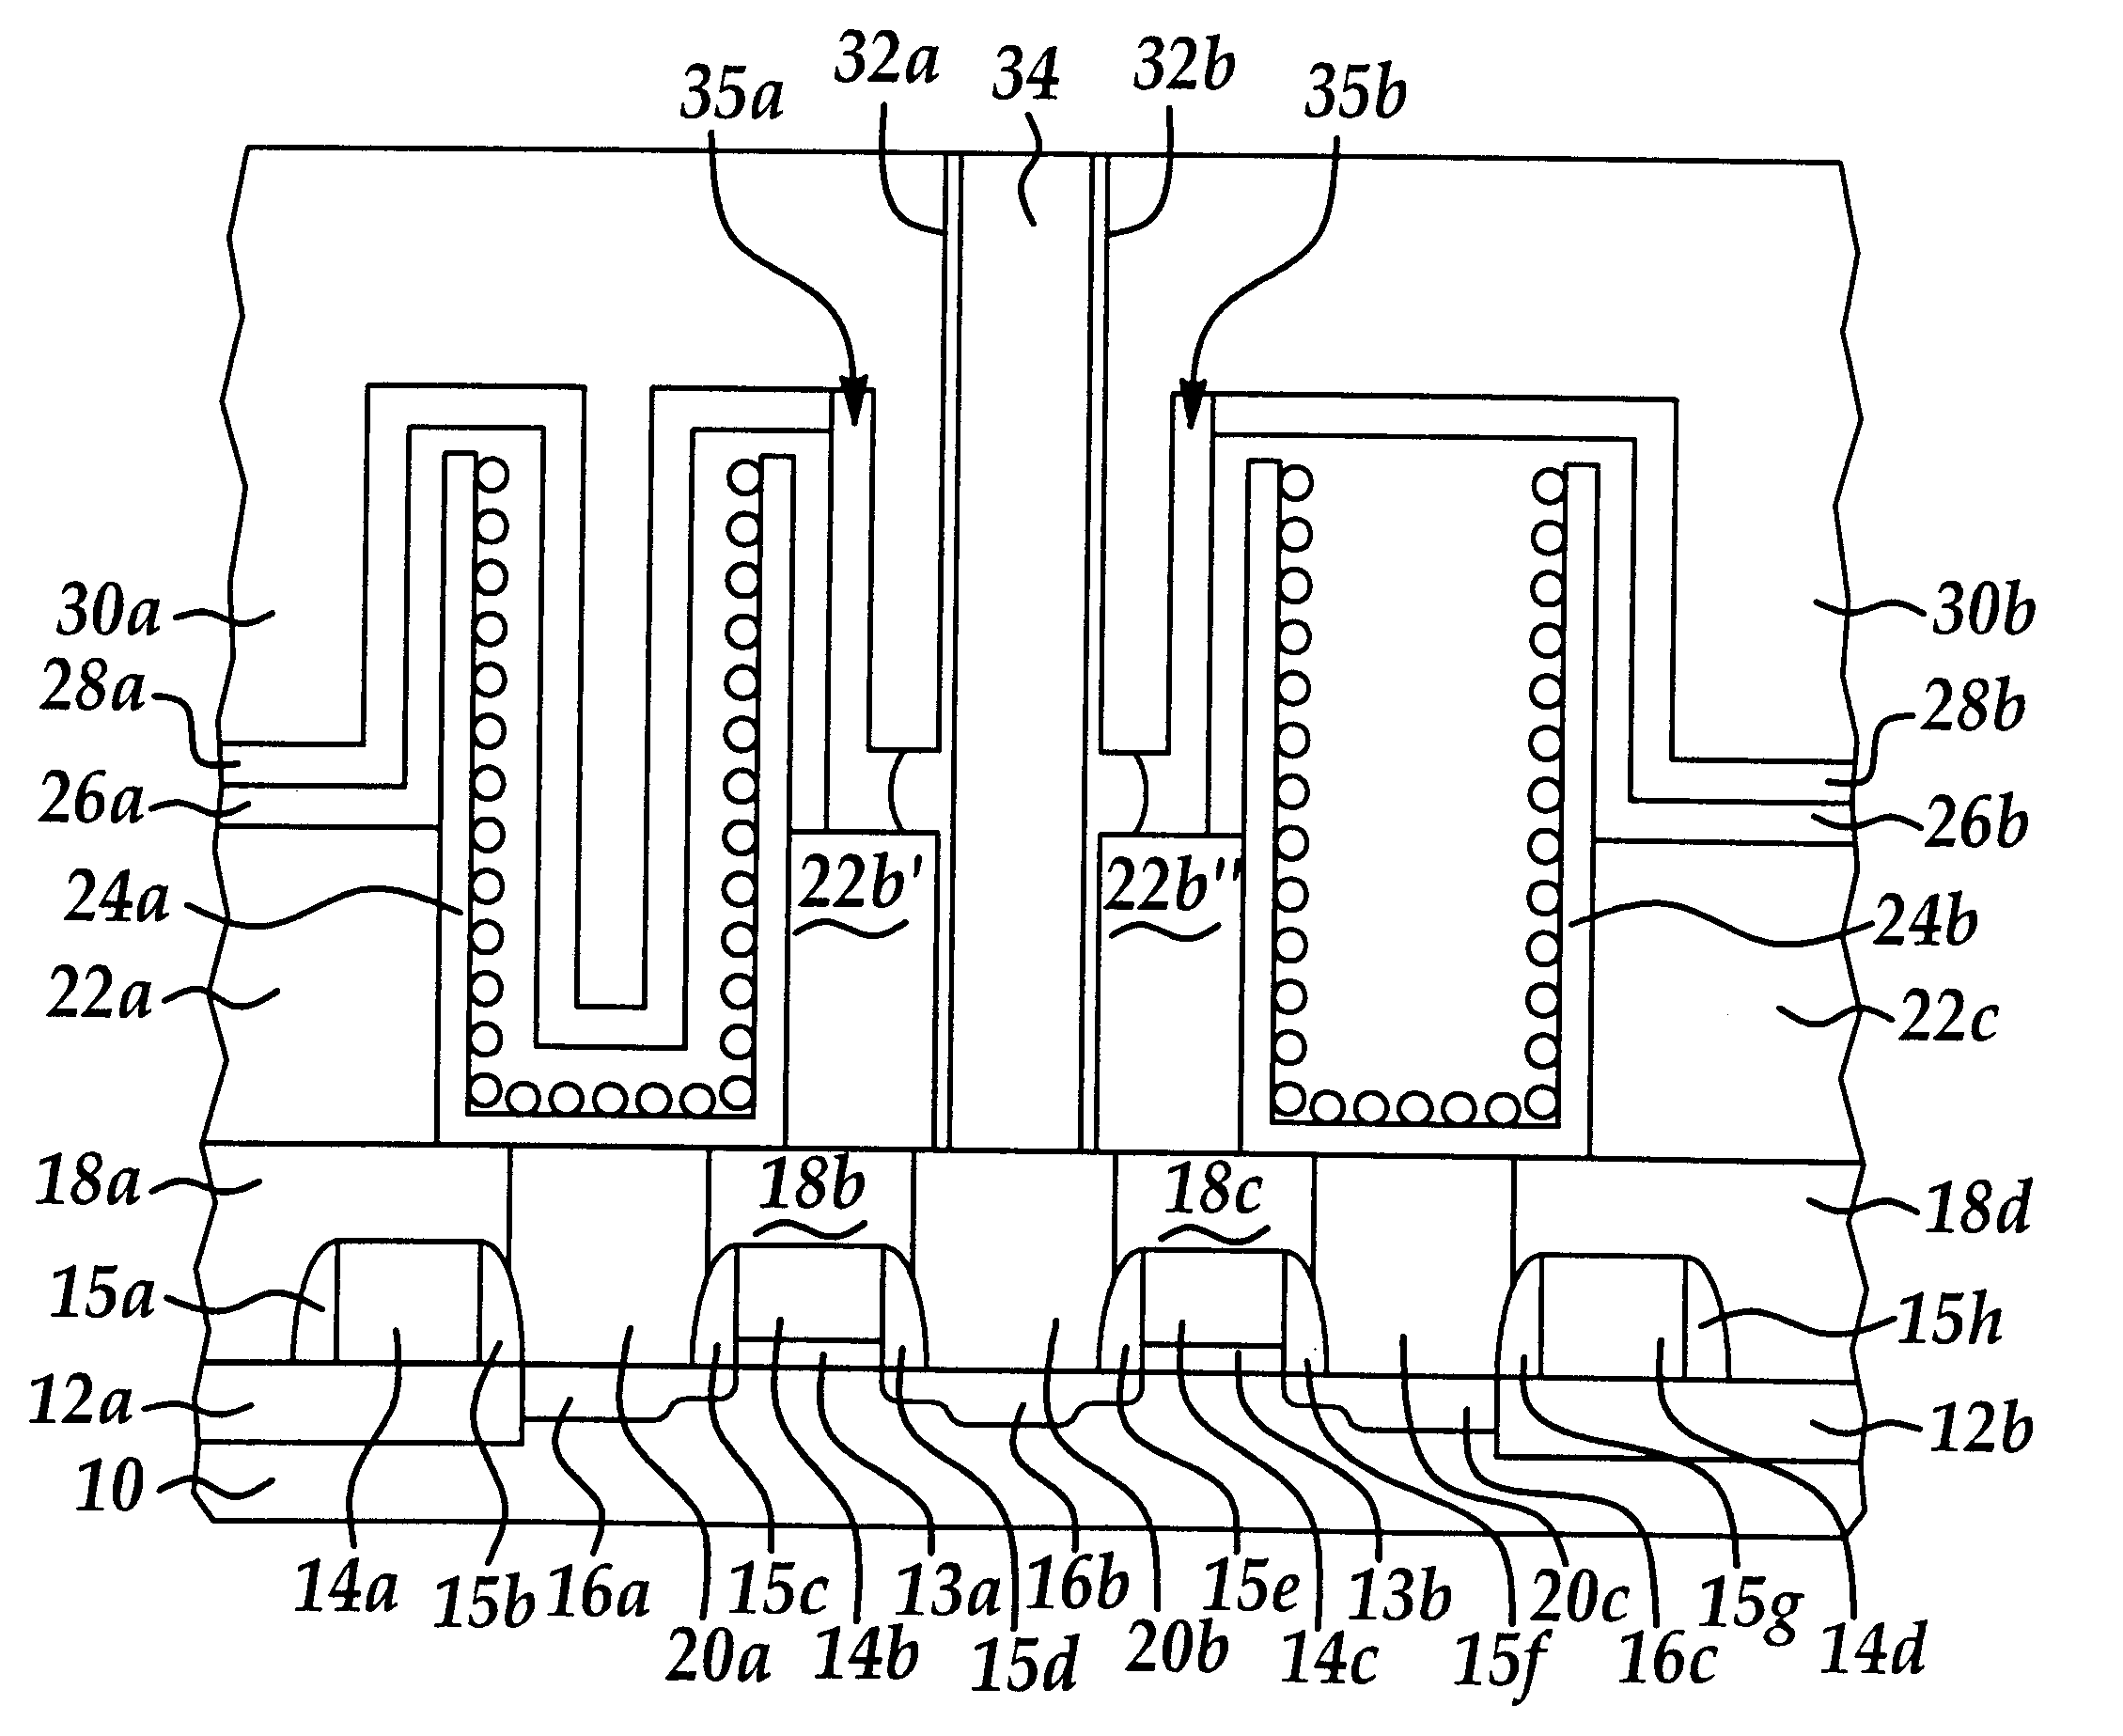 Brevet Us6501120 Capacitor Under Bitline Cub Memory Cell Diagram Of Structure Patent Drawing